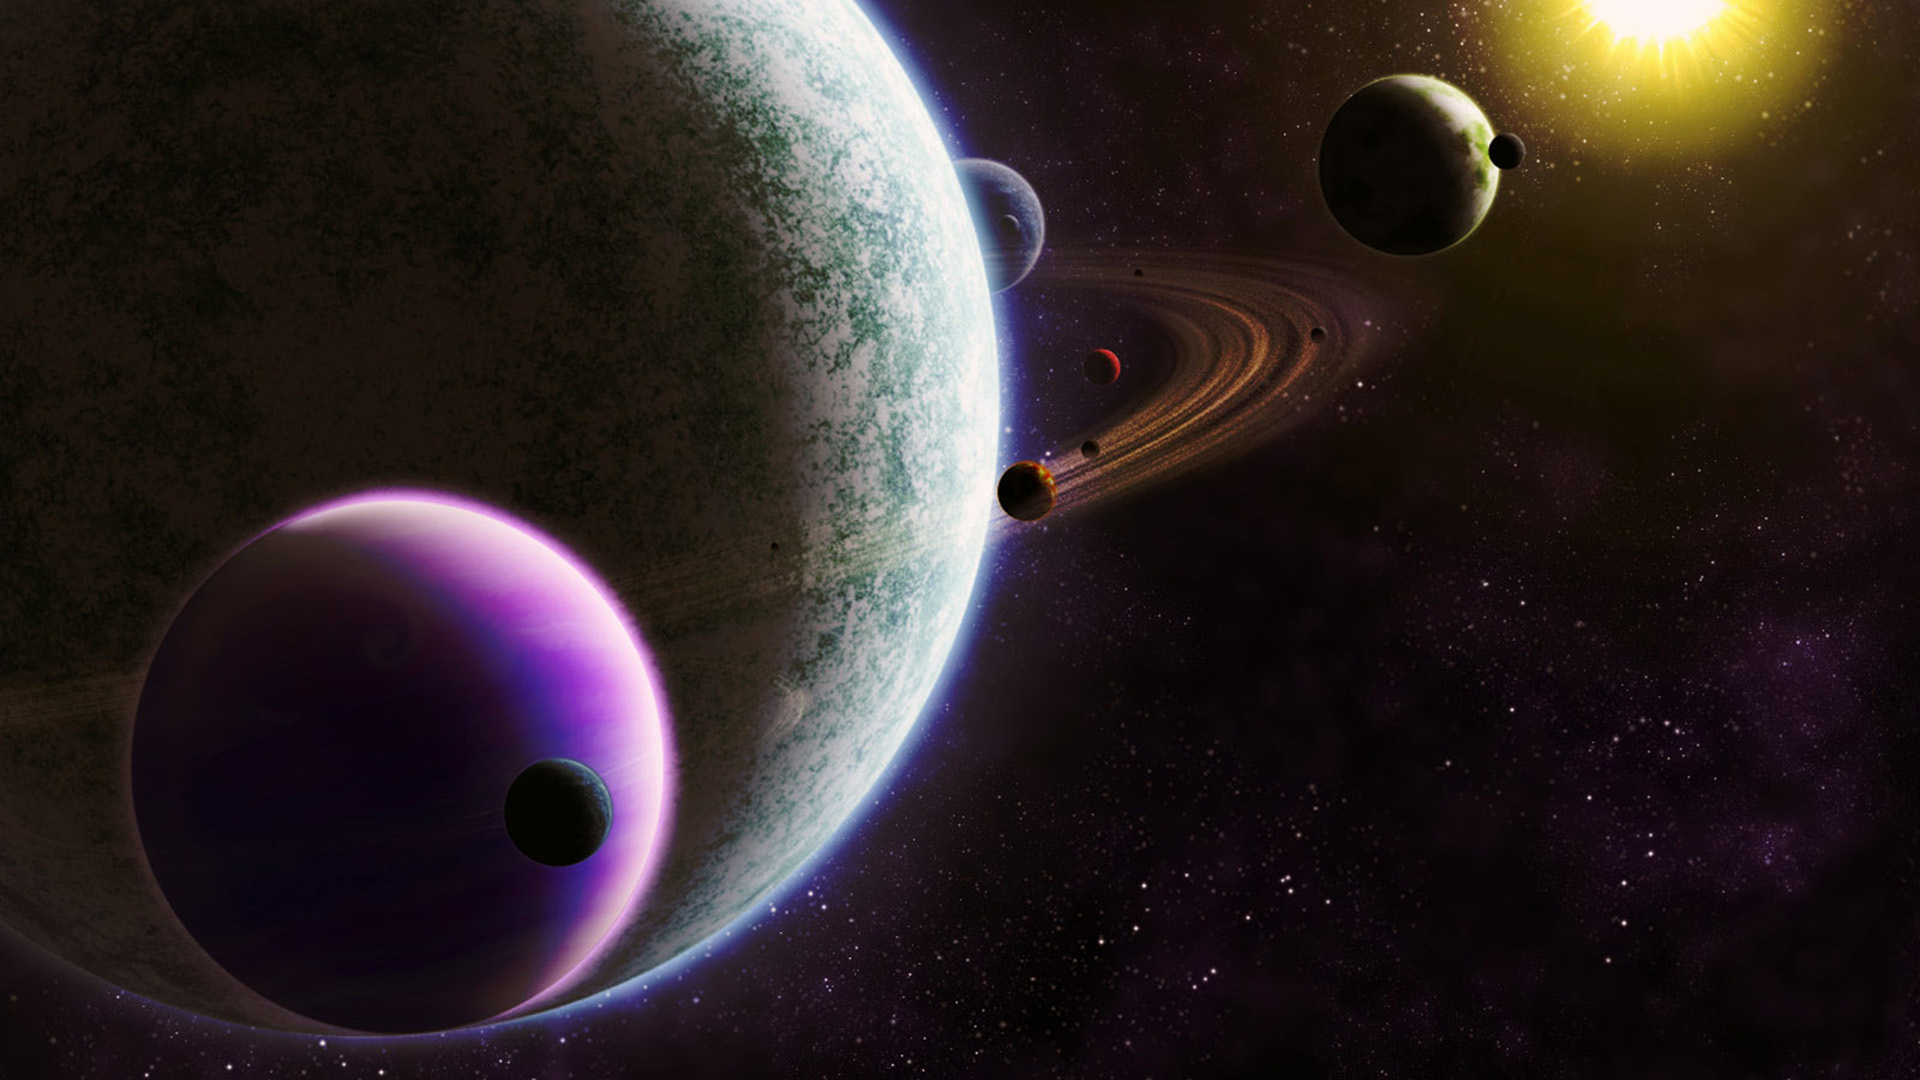 3d Solar System Live Wallpaper For Android Space Planet Planetary Rings Space Art Wallpapers Hd